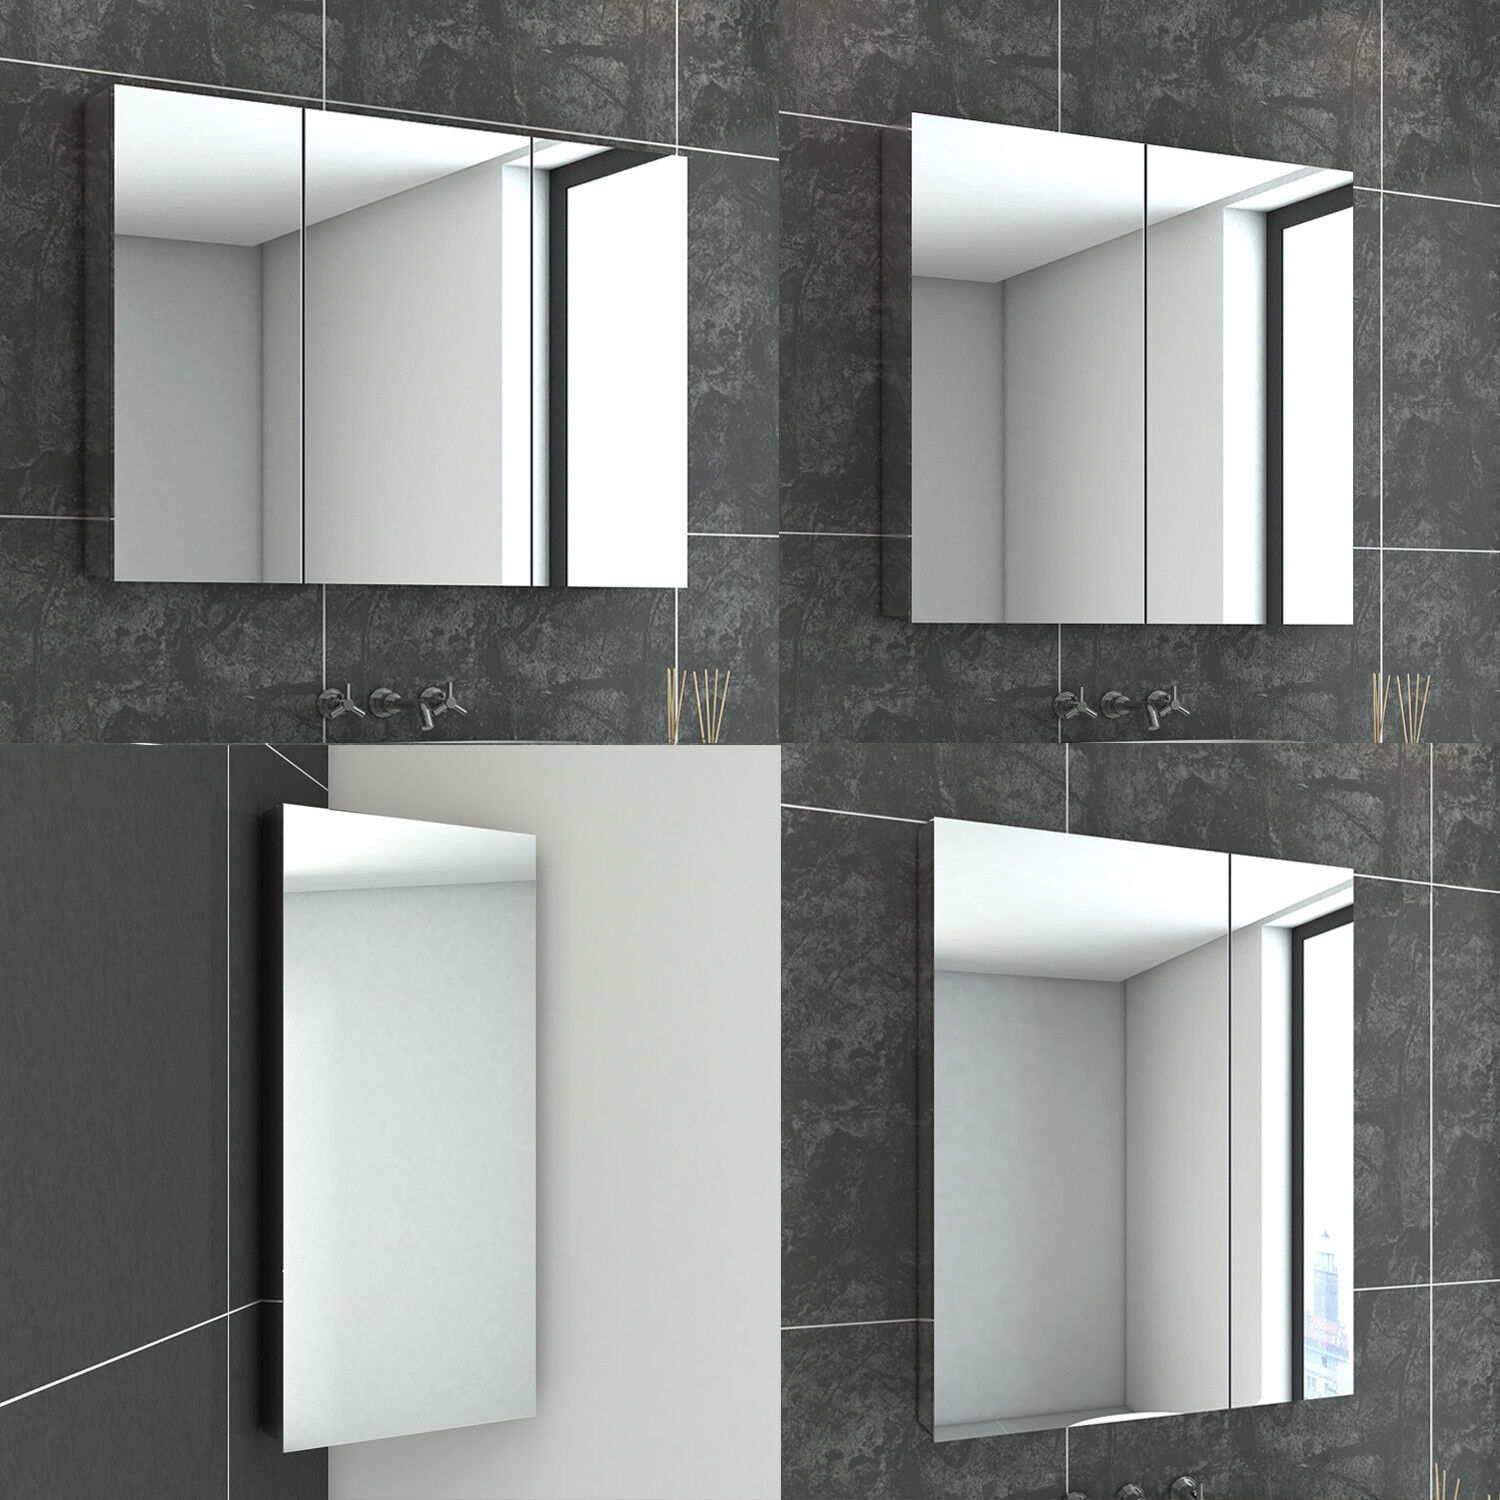 Medicine Cabinets Large Capacity Wc Decoration Storage Cupboard Peaceip Bathroom Cabinet With 3 Mirror Doors Wall Mounted Waterproof And Moisture Proof Vanity Mirror Cabinet Home